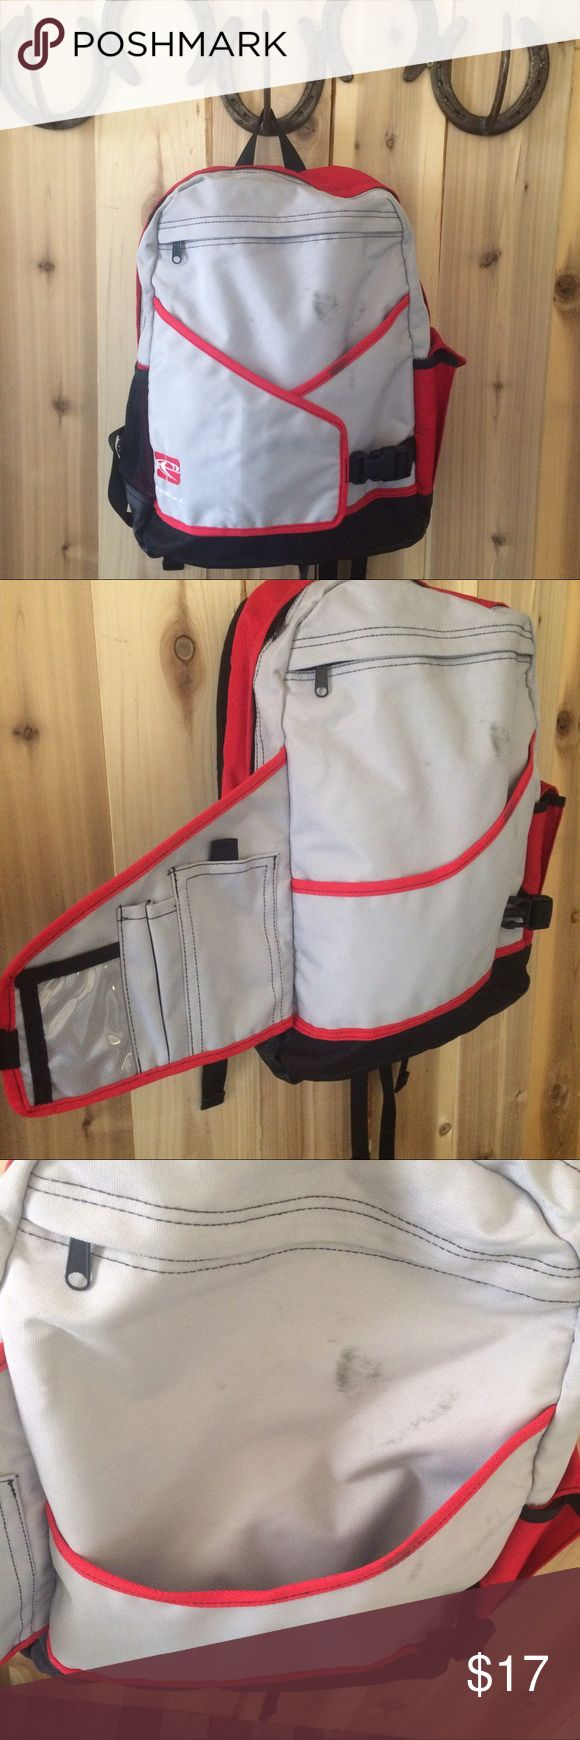 O'Neill sport surf skate book laptop backpack Good used condition with a stain on the front. Adjustable shoulder and waist straps. O'Neill Bags Backpacks